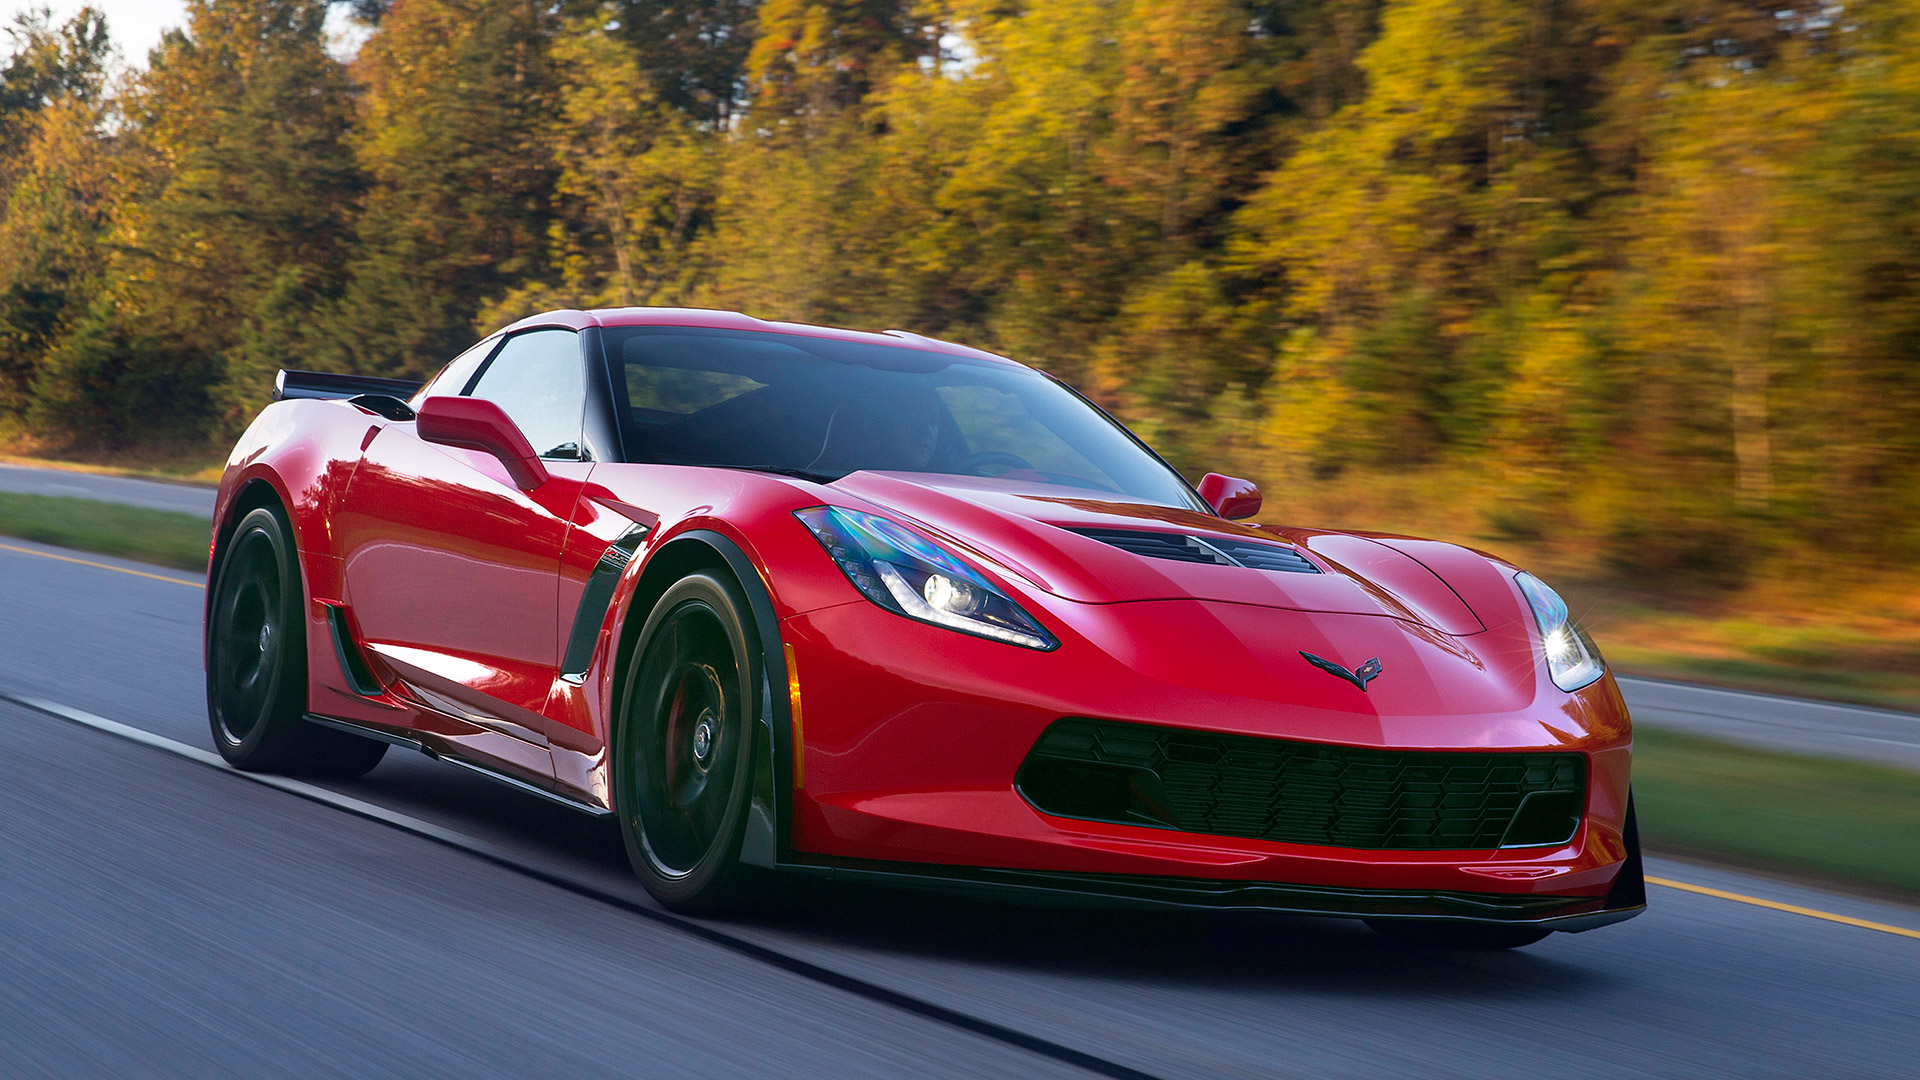 Chevy Offers a Generous Incentive to Current Corvette Owners